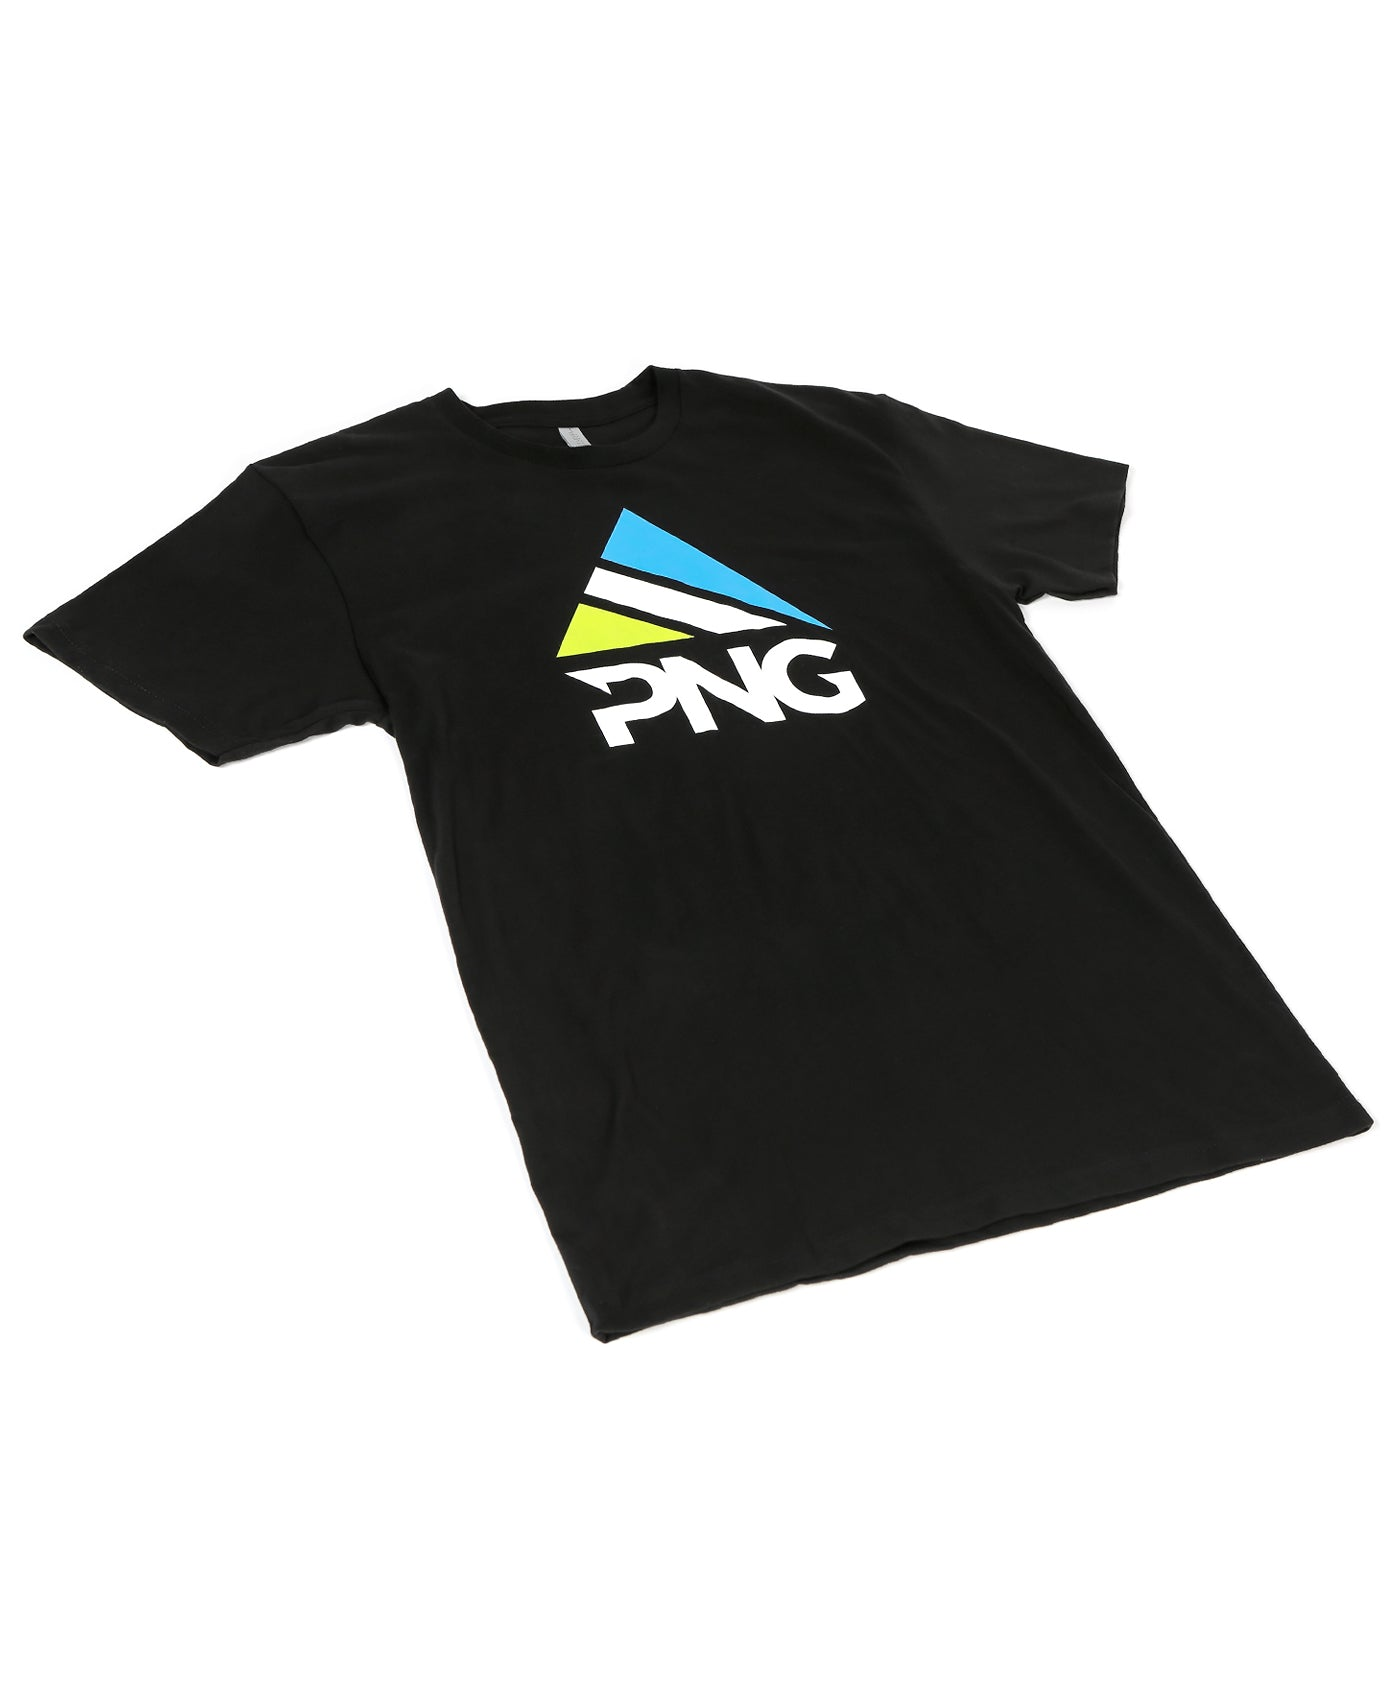 Mens Short Sleeve Tri-Color Stacked T-Shirt - Pinnacle Nutrition Group